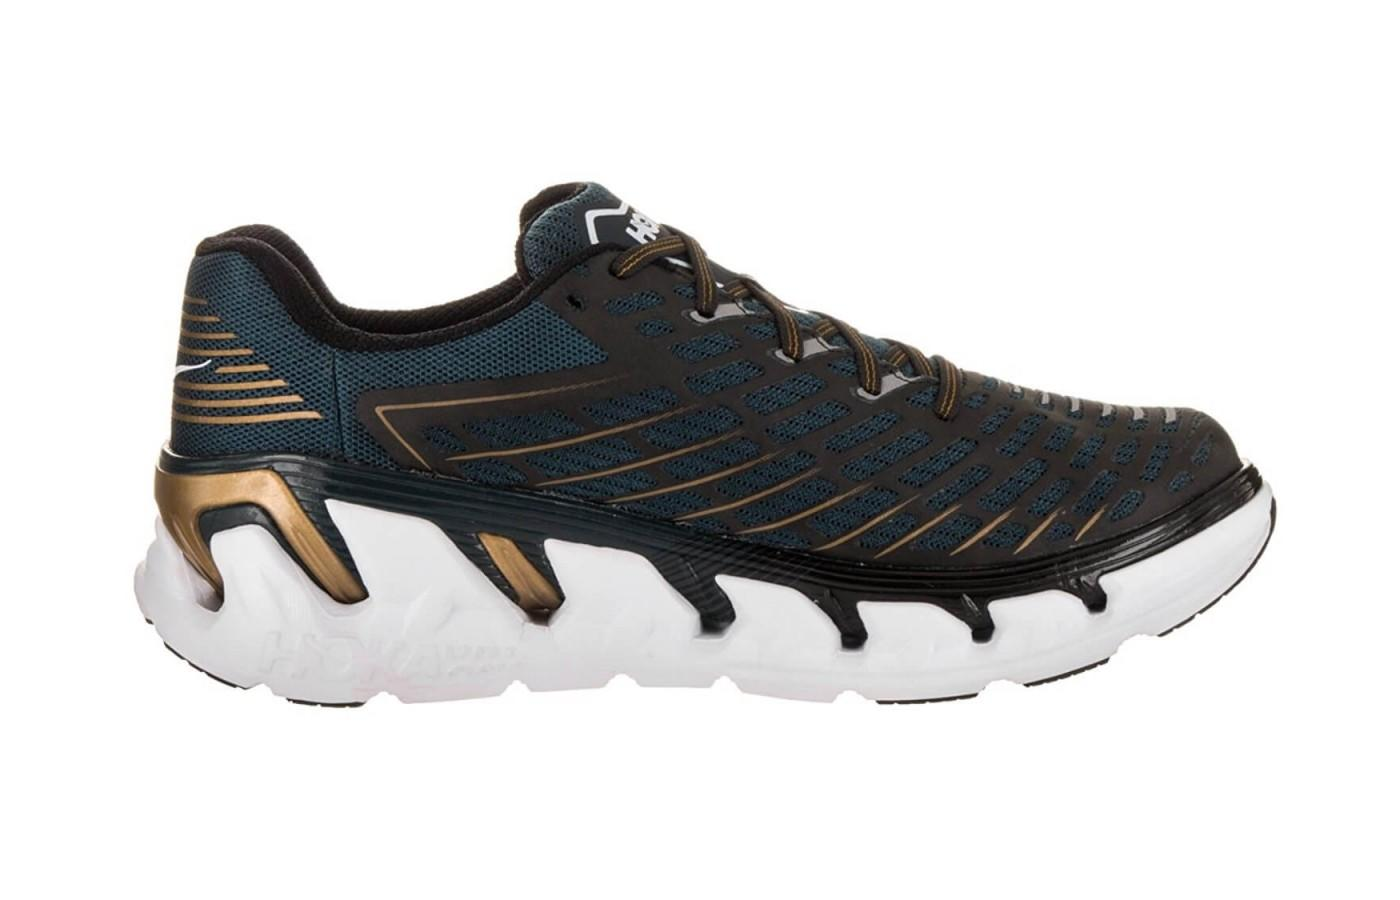 this shoe is excellent for long runs thanks to the comfortable cushioning